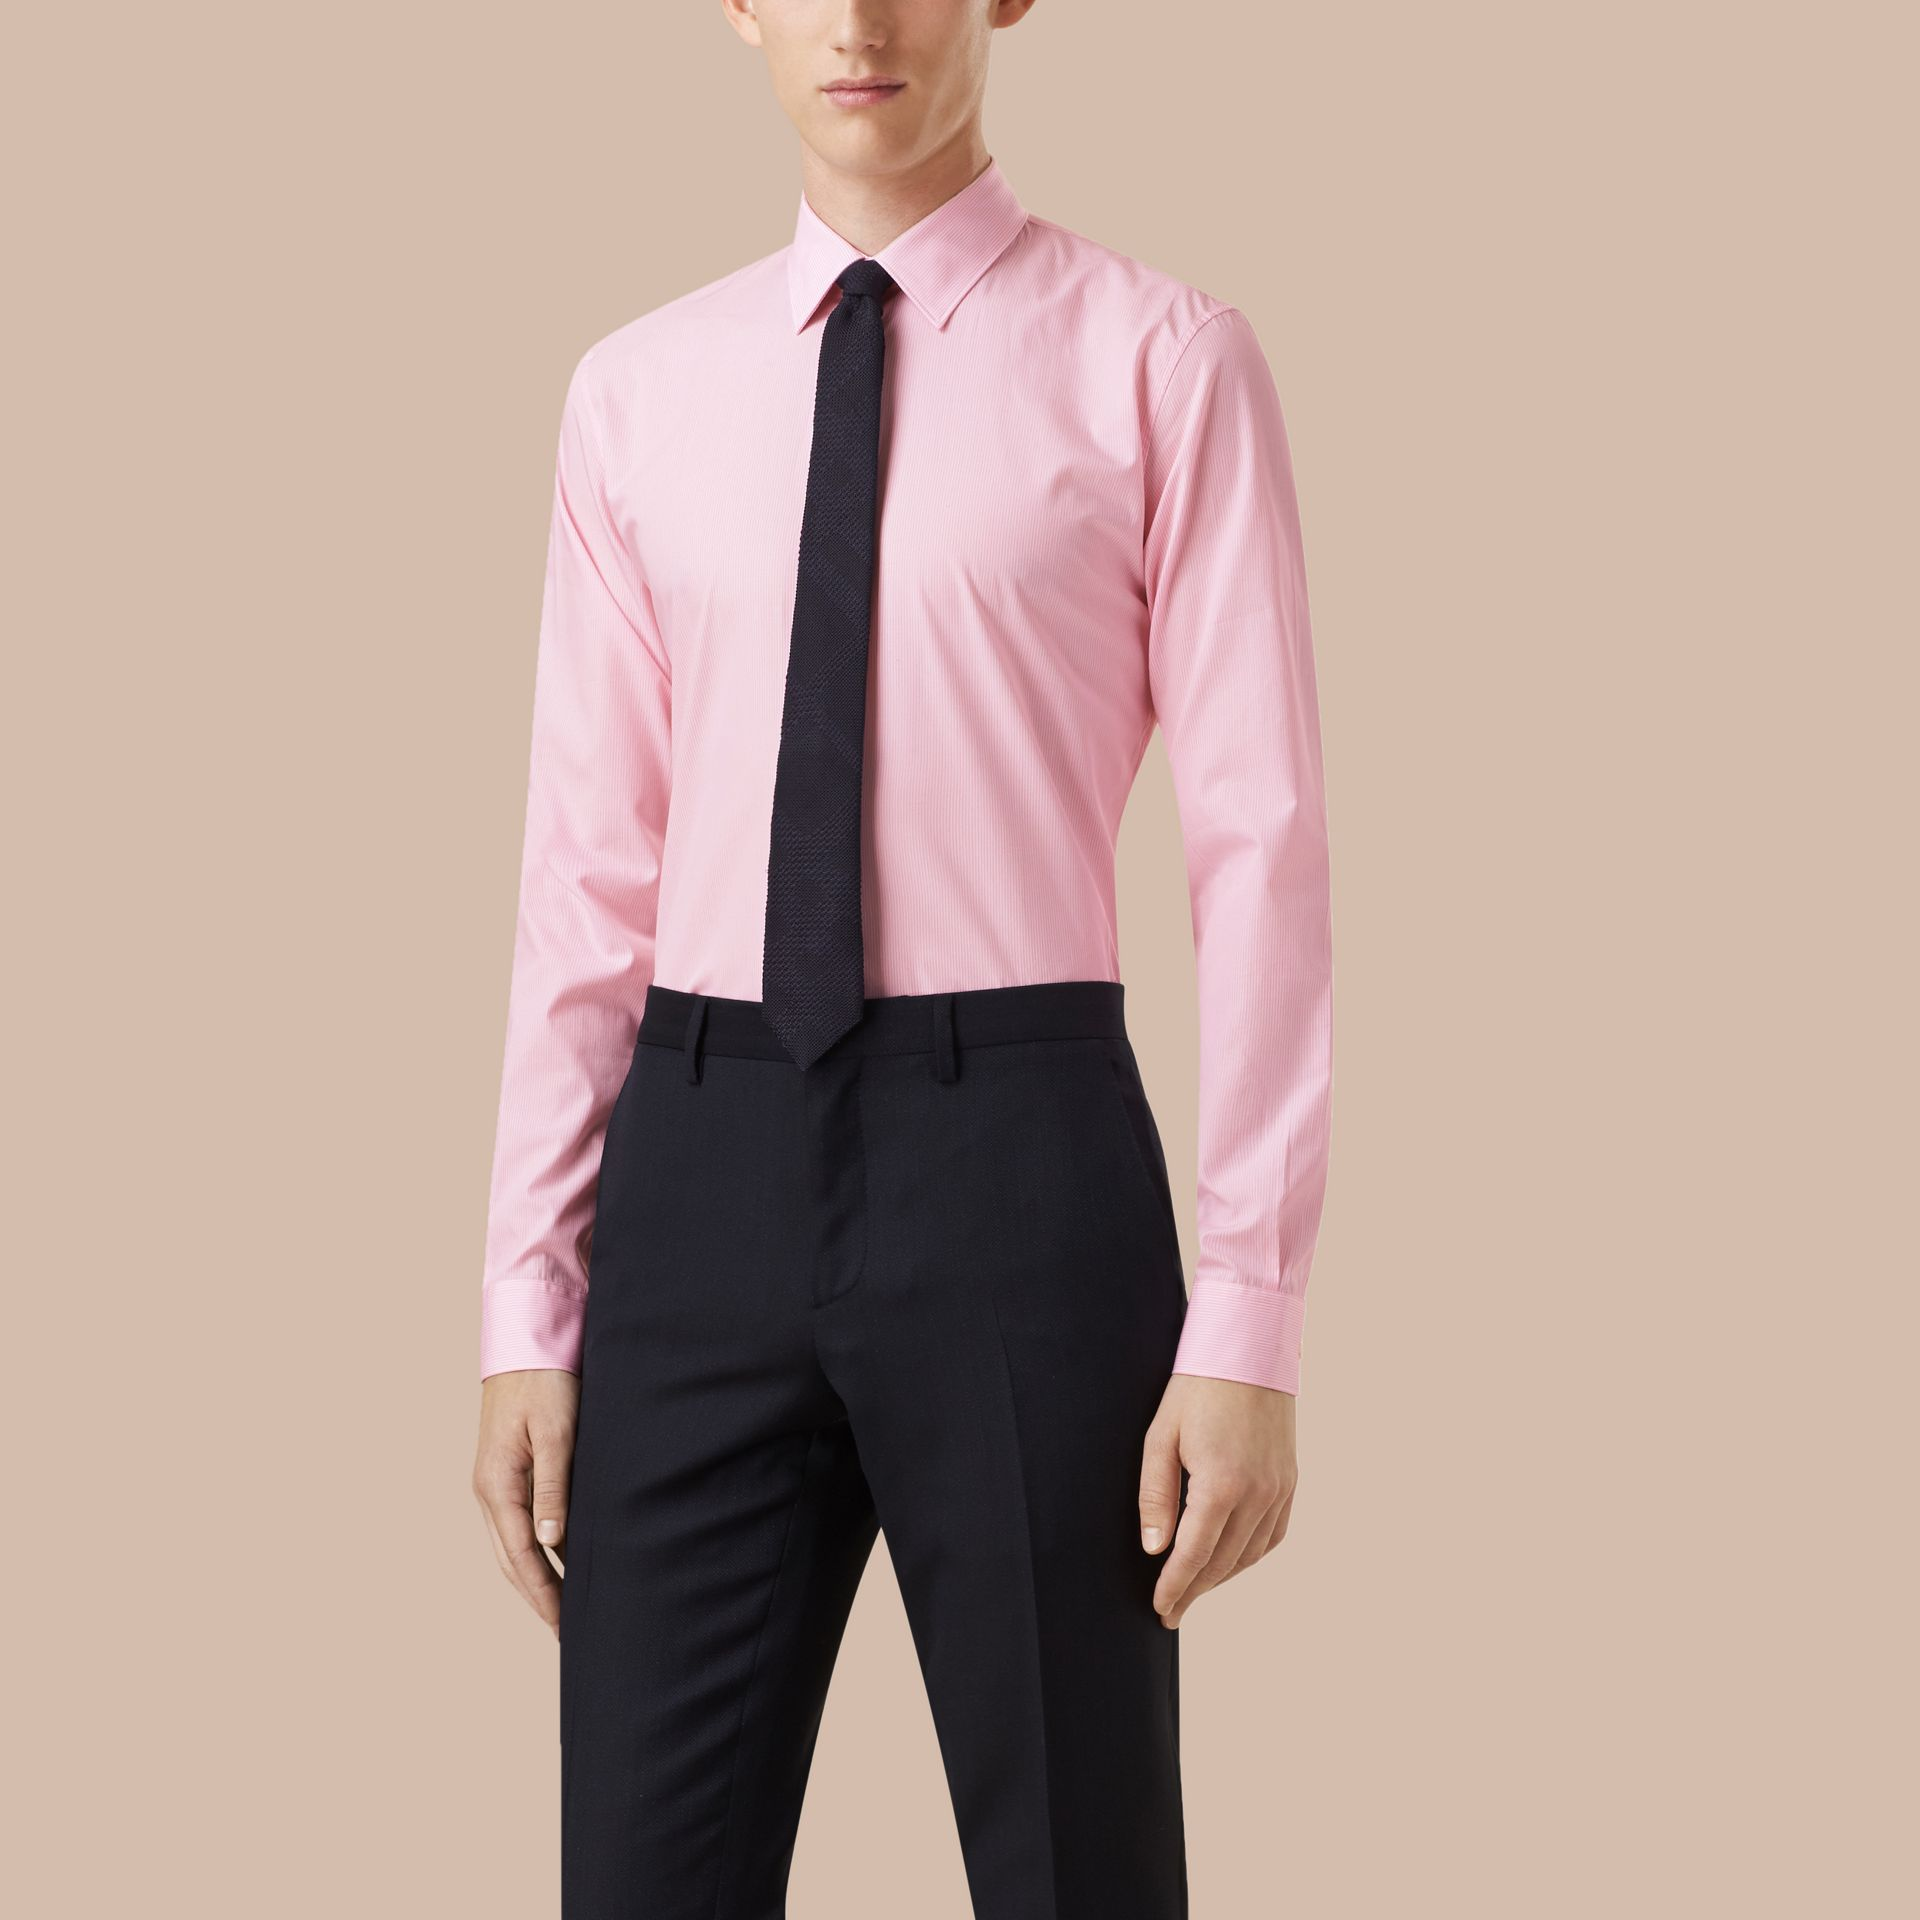 City pink Slim Fit Striped Cotton Poplin Shirt City Pink - gallery image 1